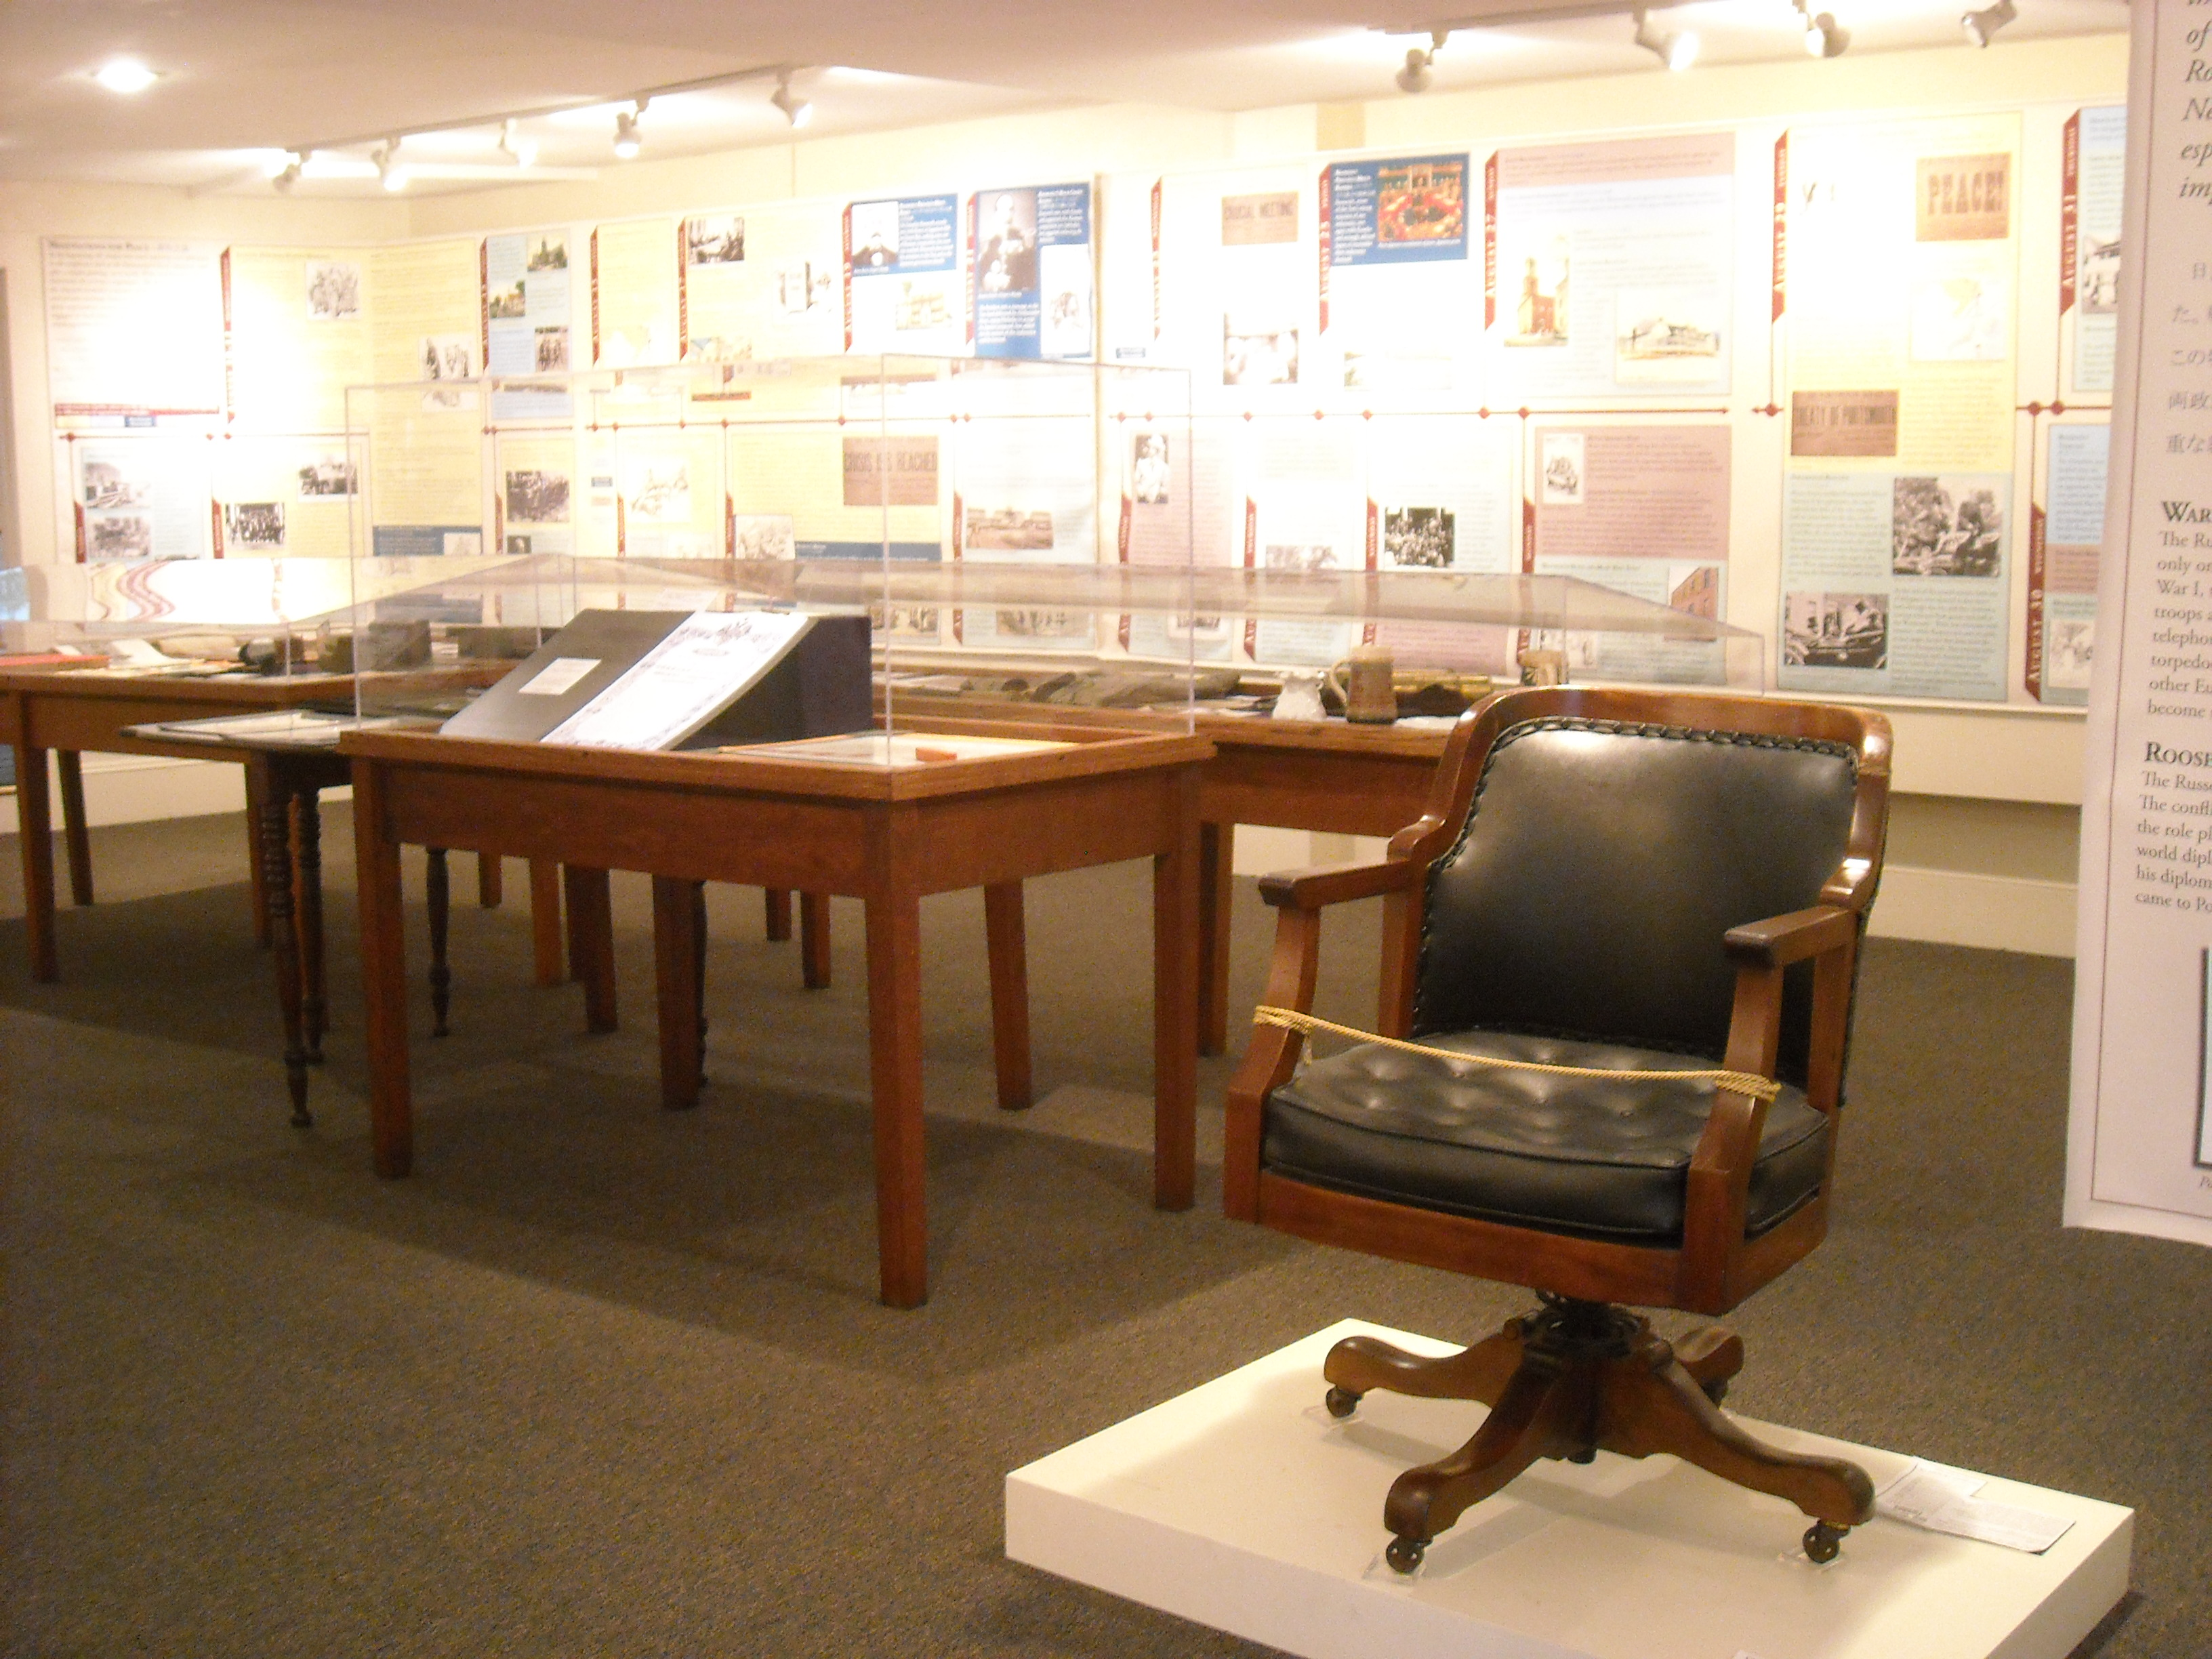 The Treaty exhibit includes the chair Baron Komura occupied during the negotiations at the Shipyard.